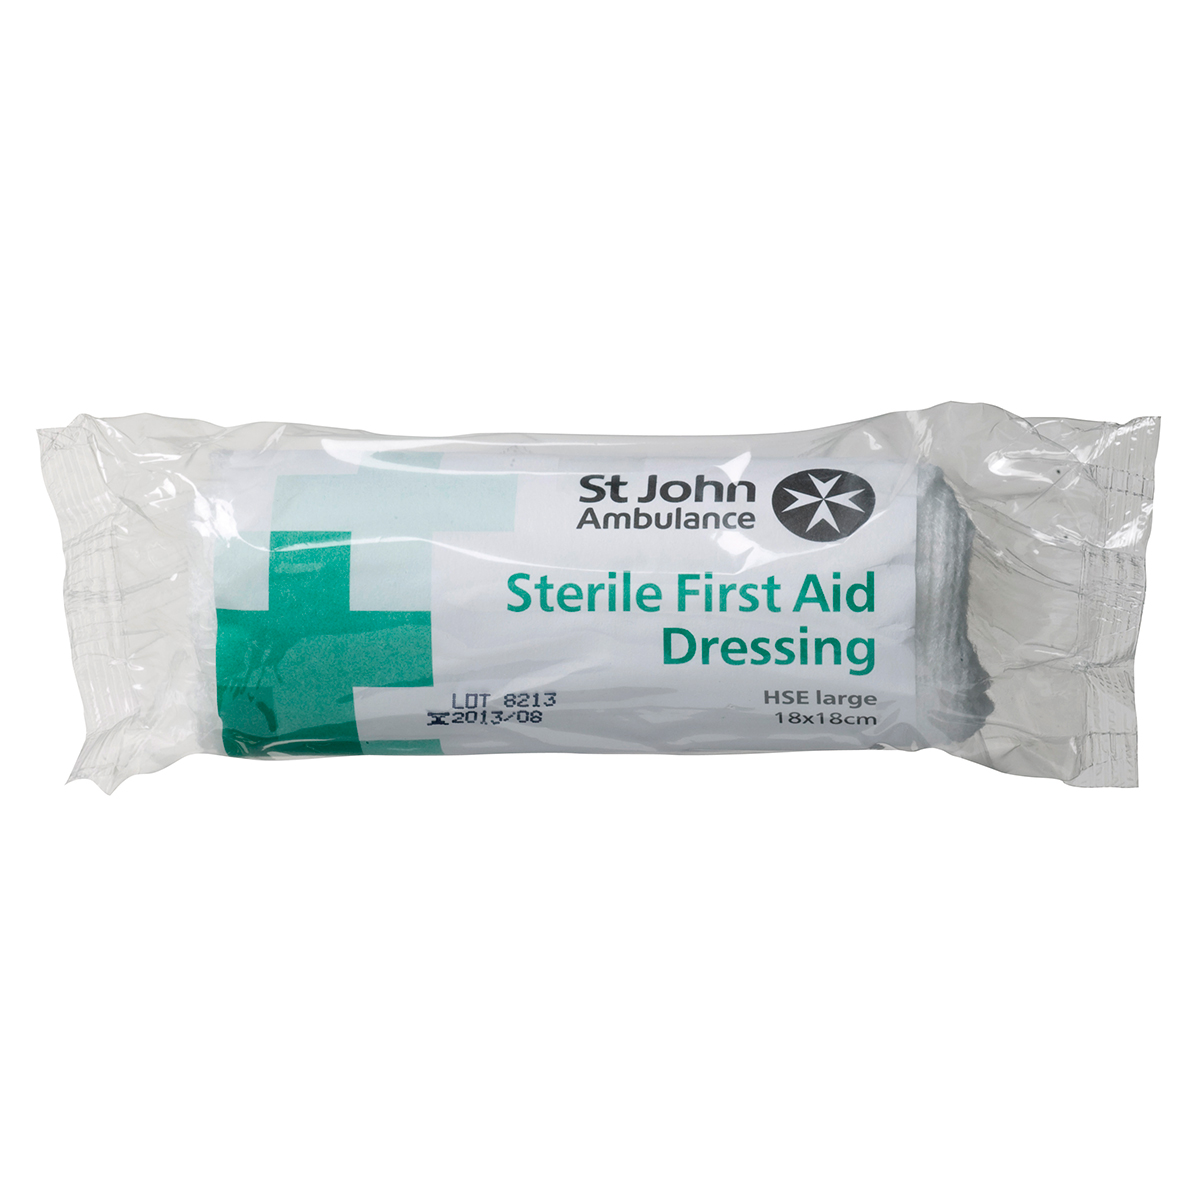 18cm x 18cm Large St John Ambulance HSE First Aid Dressing